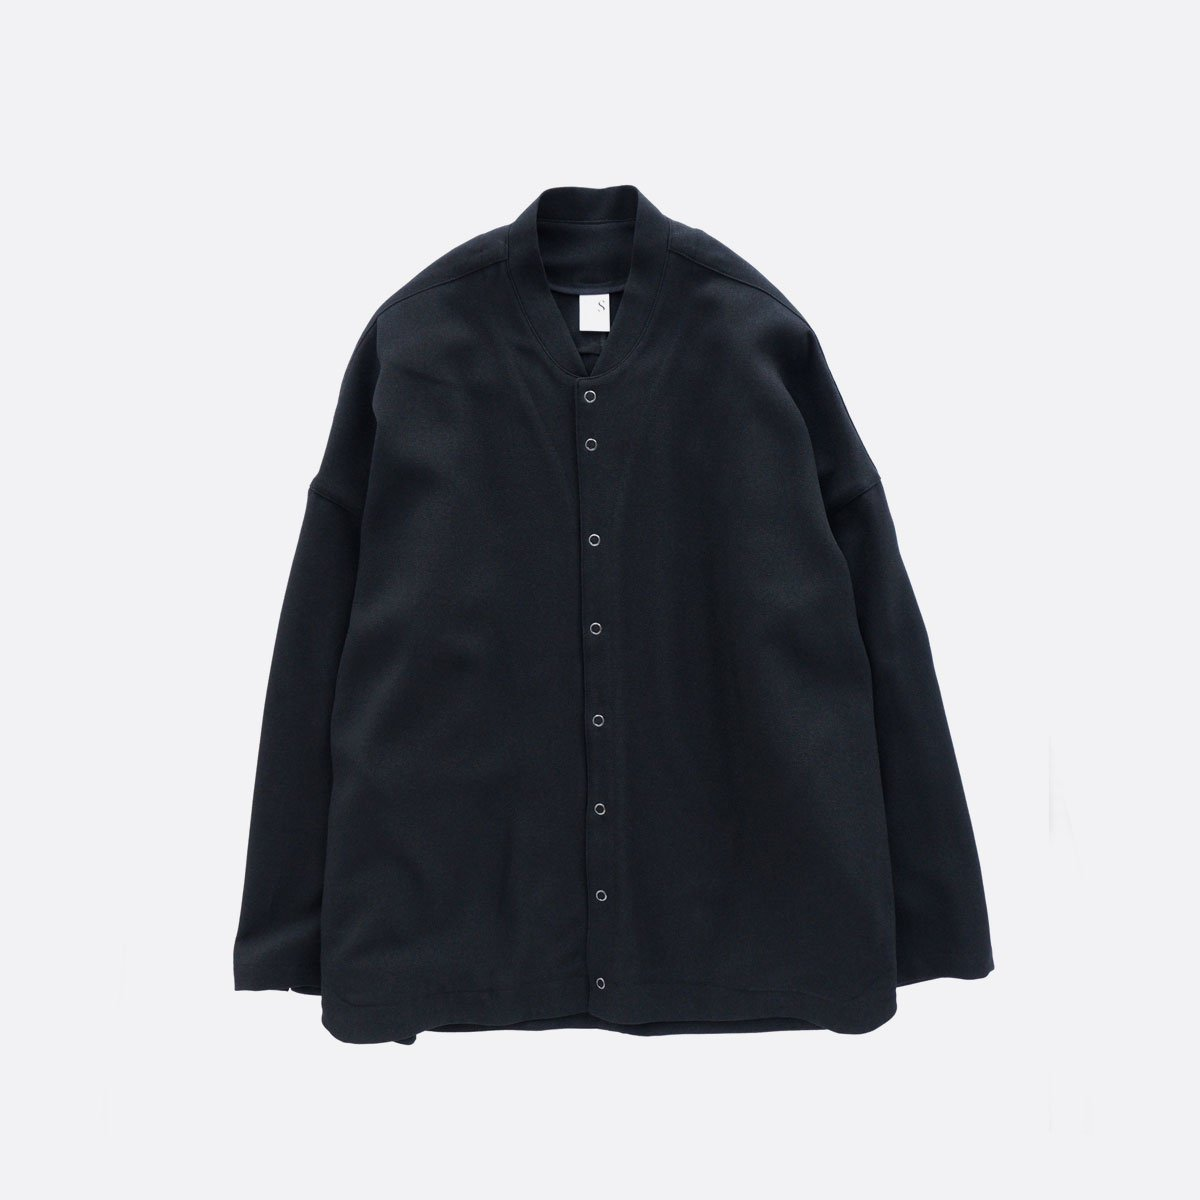 NO CONTROL AIR MIX MELANGE POLYESTER TWILL BLOUSON  (black)